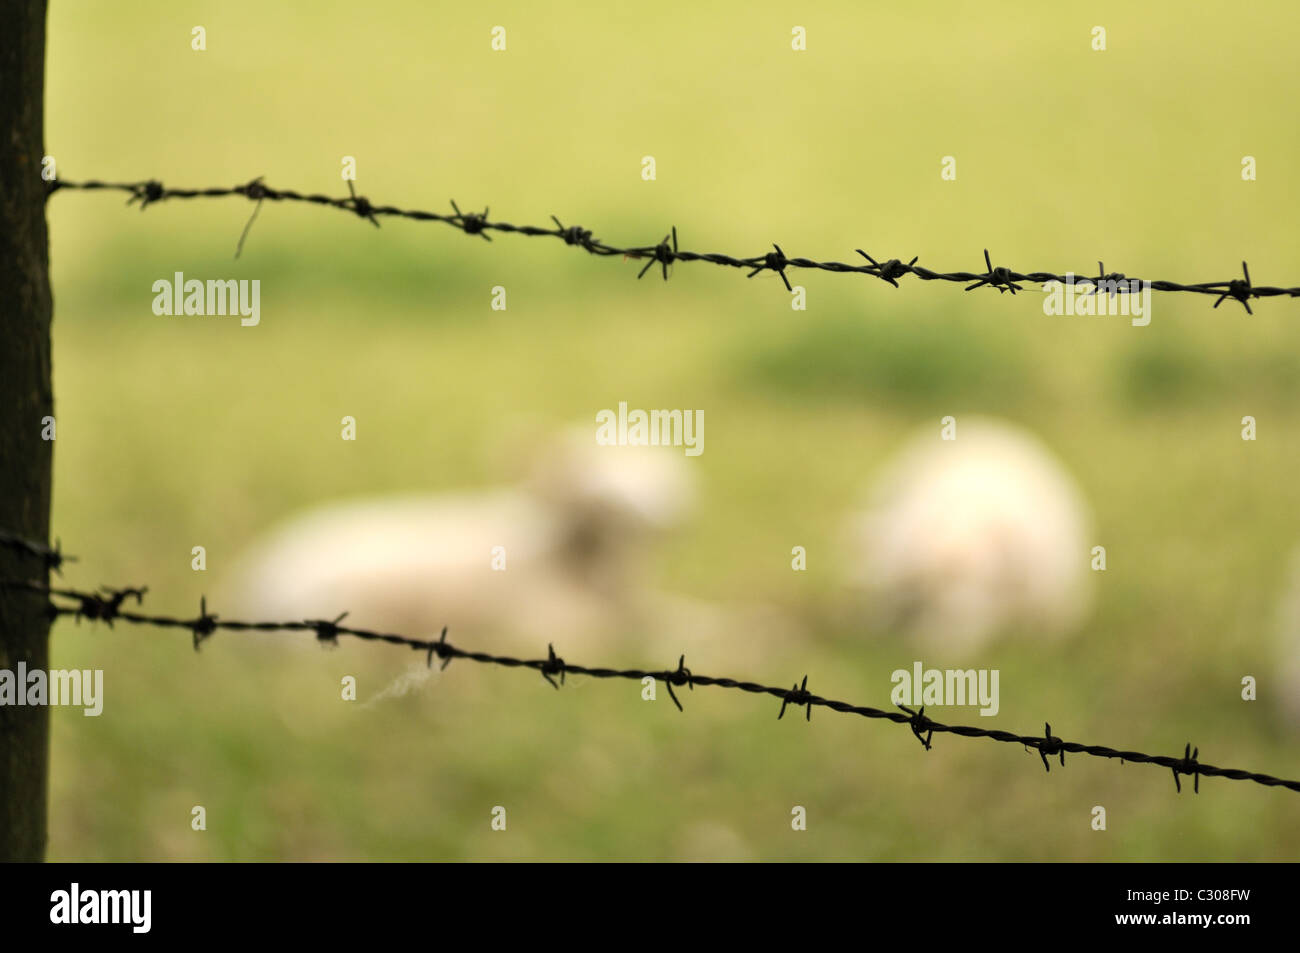 Sheep behind a barbed wire fence. - Stock Image